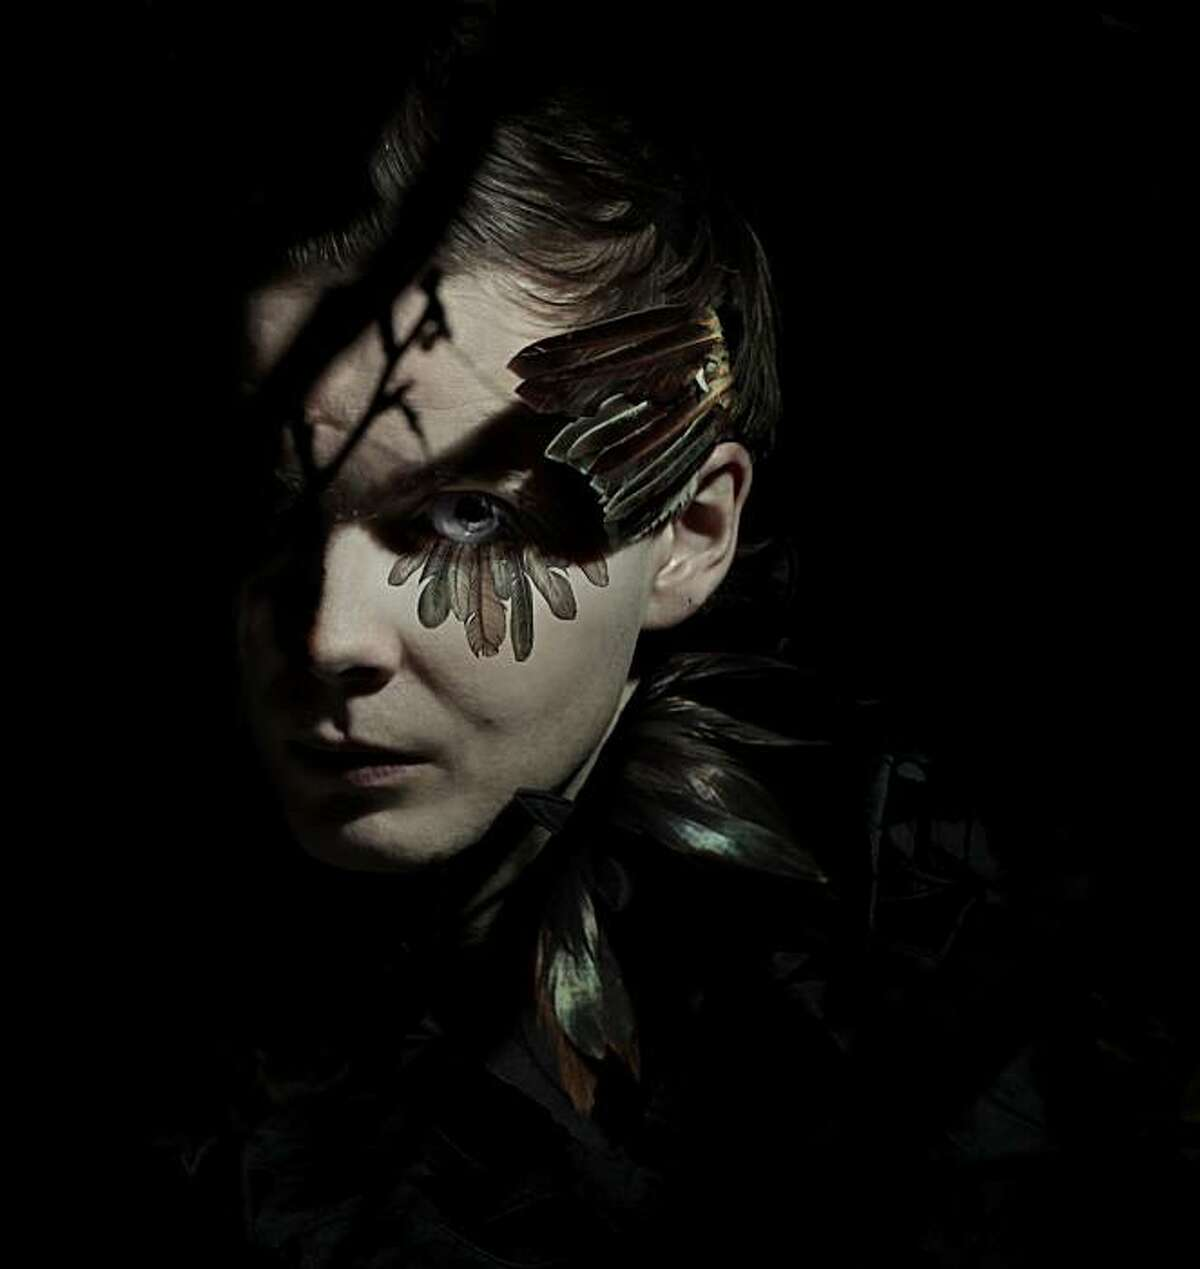 Sigur Ros singer Jonsi is touring behind his first solo album,